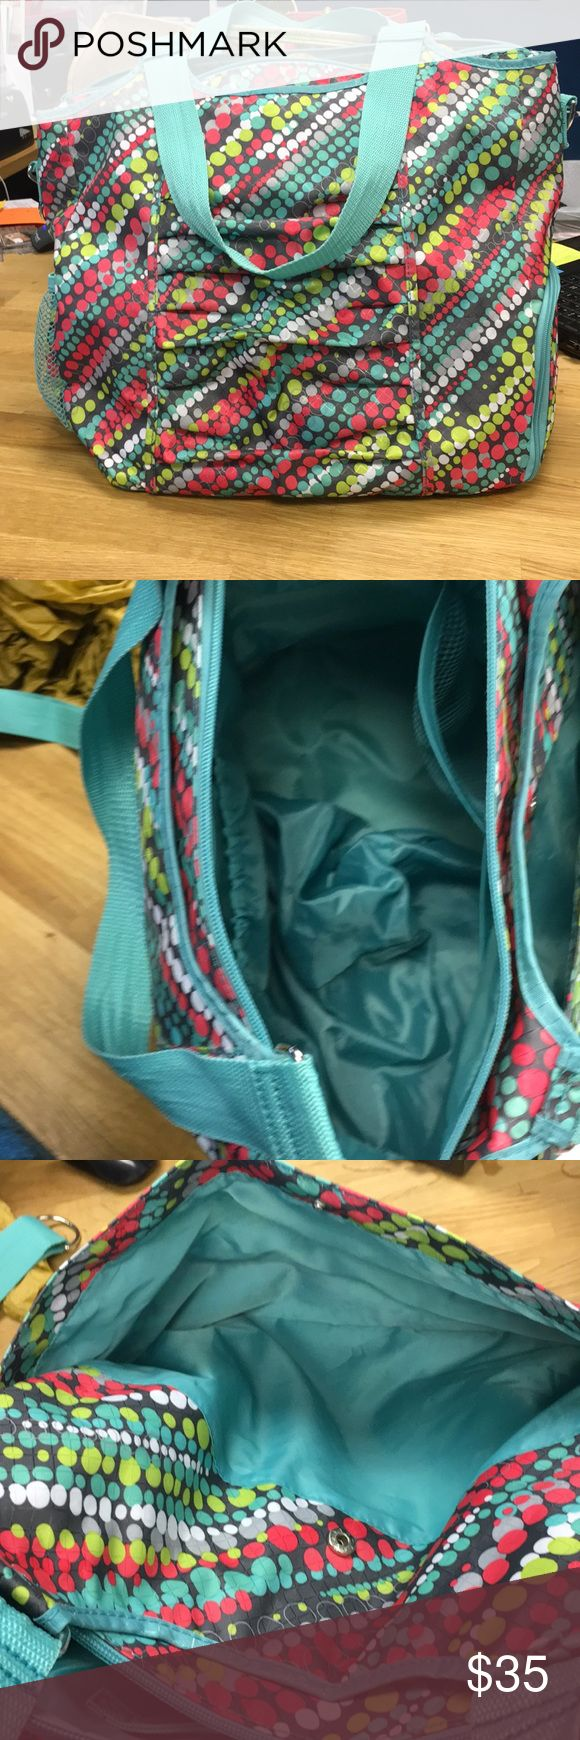 Thirty One Yoga Bag EUC From April 2014. This amazing bag has pockets for everything. Side pouch for your shoes! A front sleeve for your yoga mat! No visible wear. Excellent condition. All zippers functional. thirty one Bags Totes